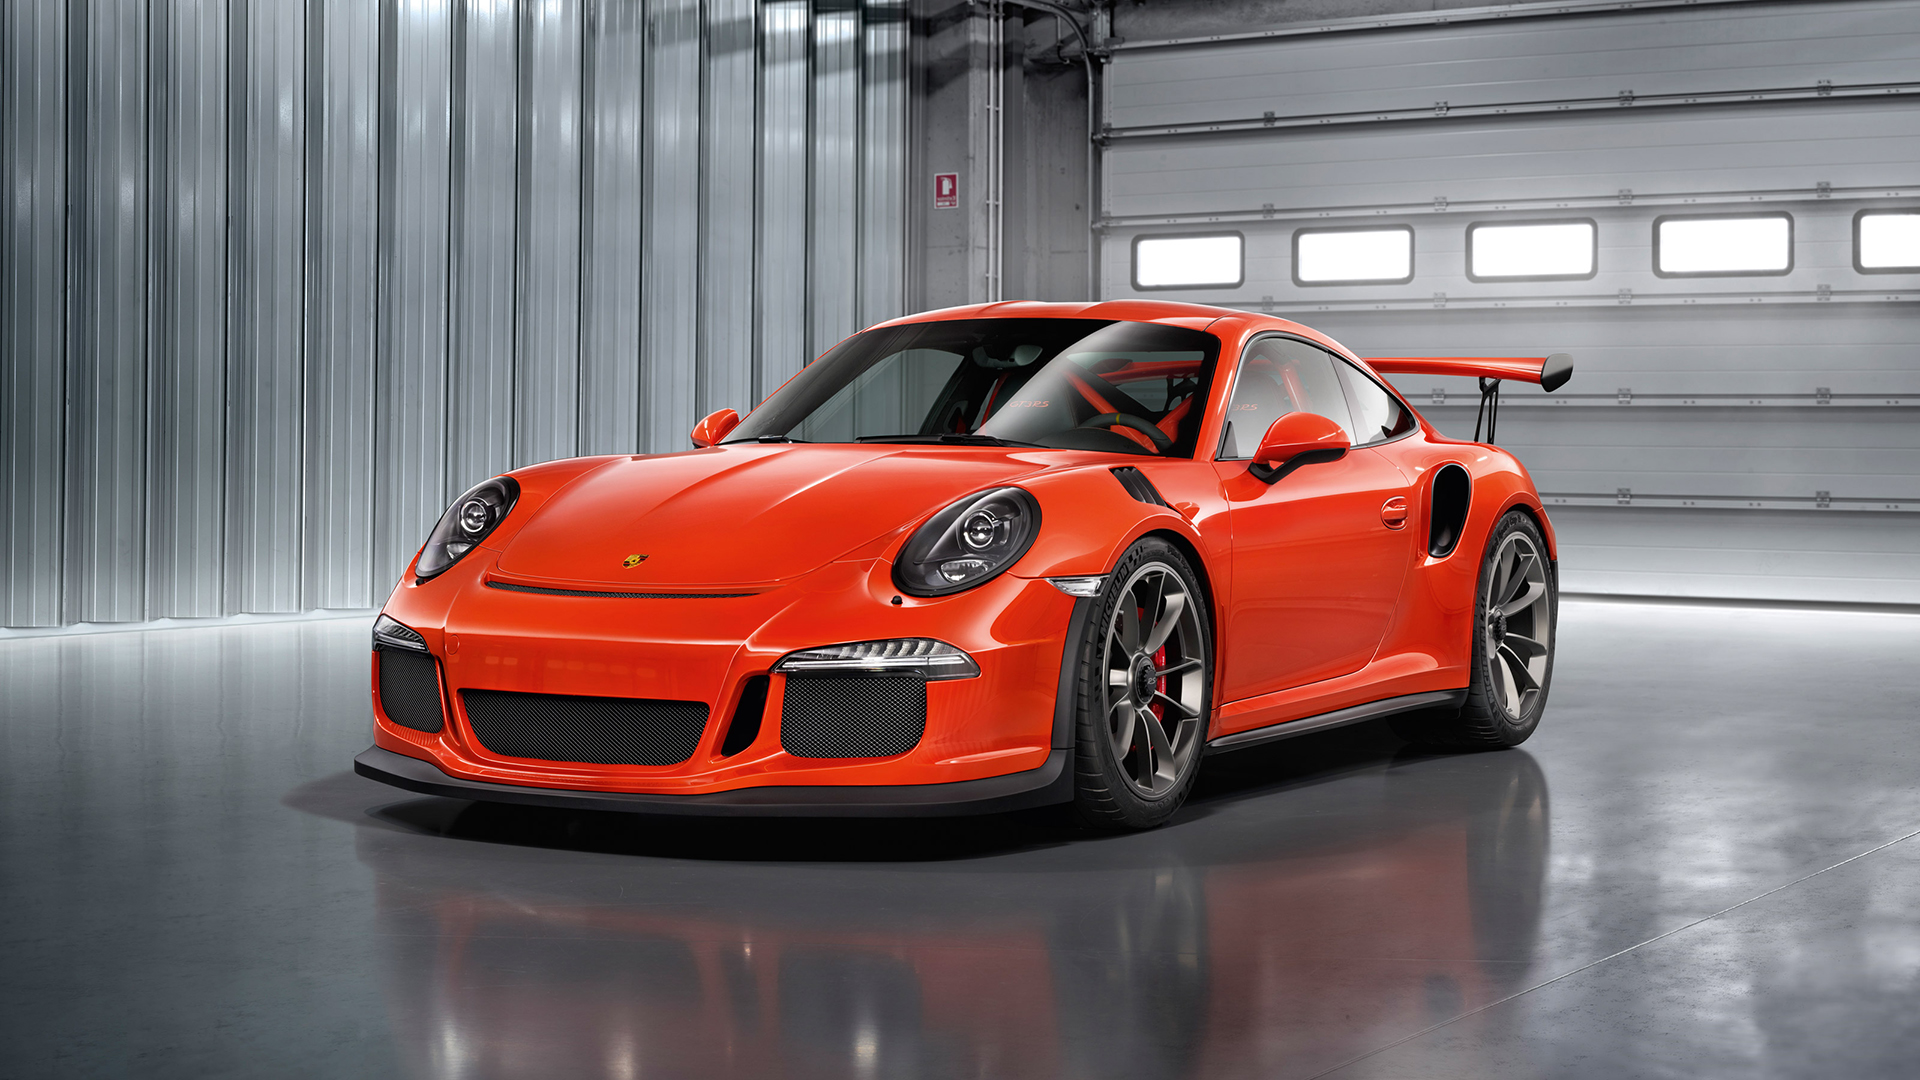 2015 porsche 911 gt3 rs wallpaper 47500 1920x1080 px. Black Bedroom Furniture Sets. Home Design Ideas